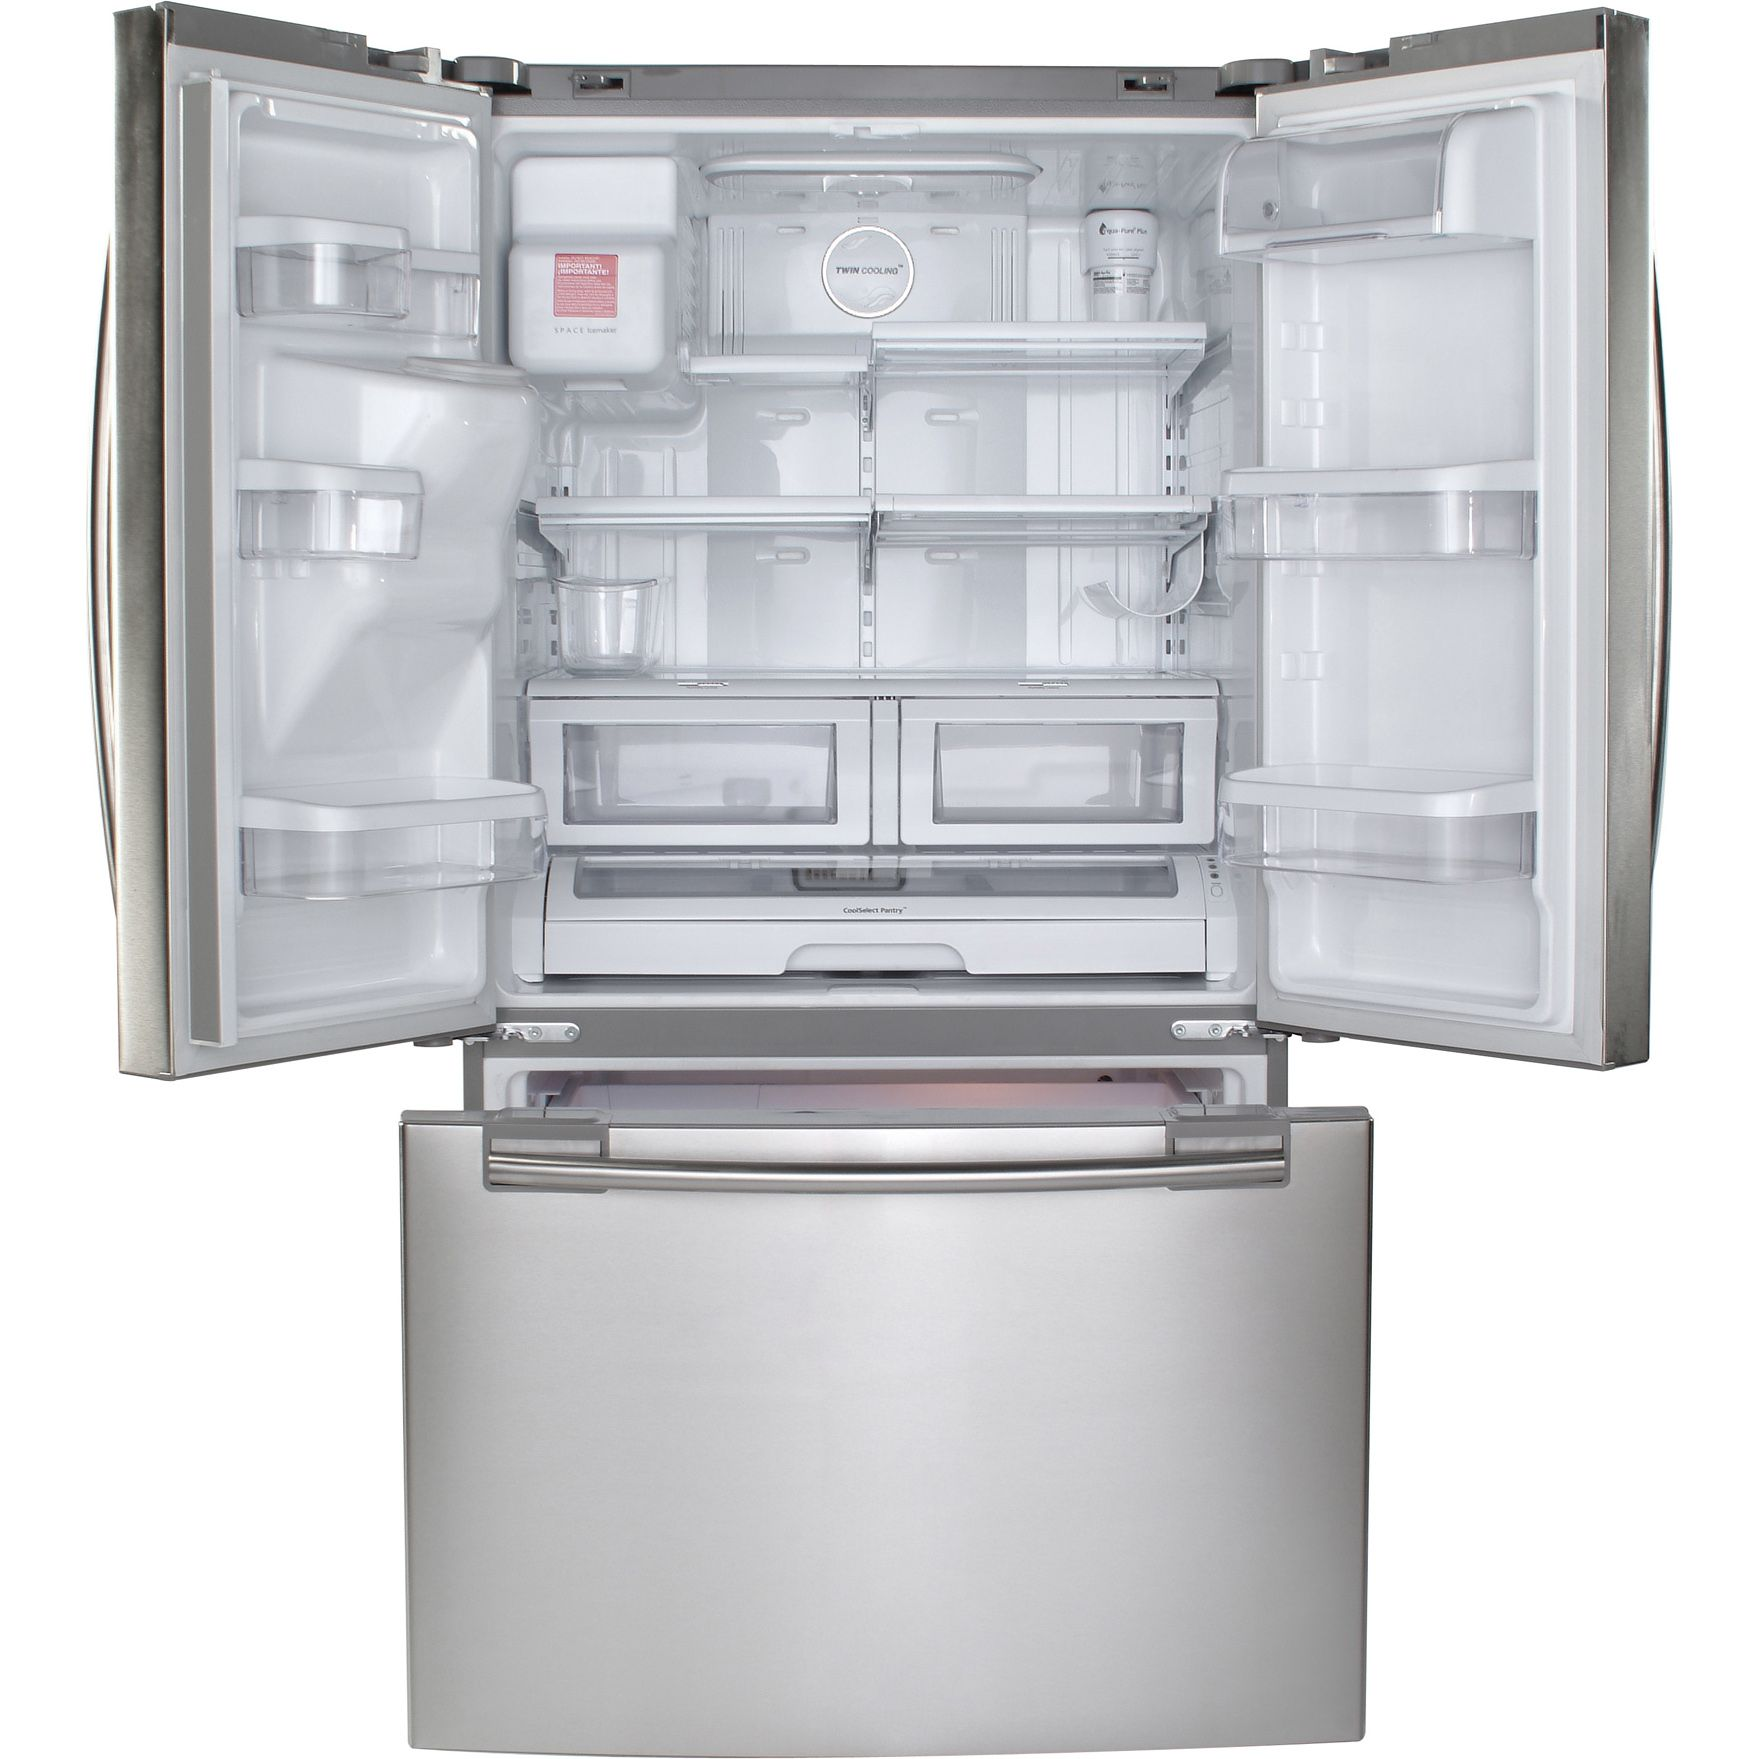 Samsung '26.0 cu. ft. French-Door Bottom Freezer Refrigerator